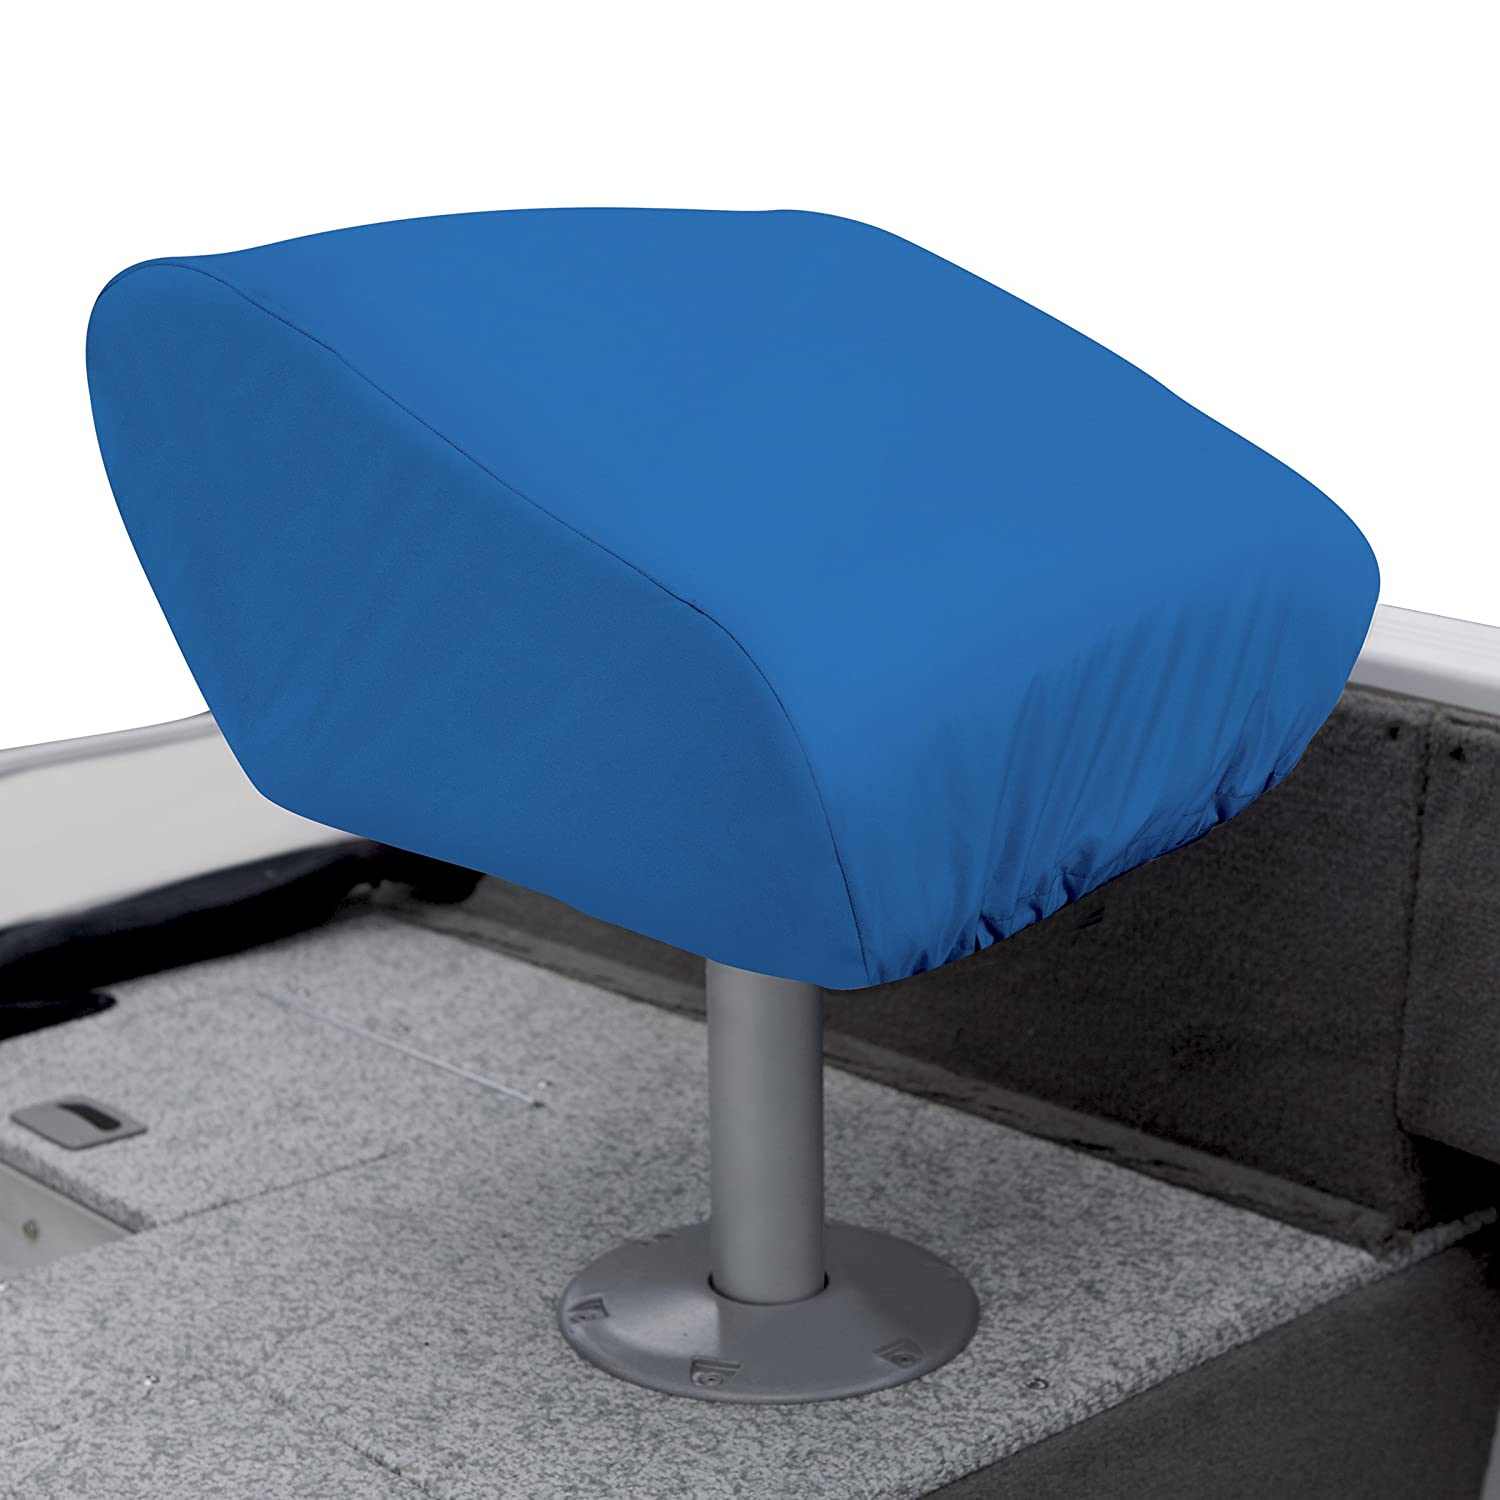 boat pontoonstuff com seats seat pedestal charcoal products gray blue pontoon